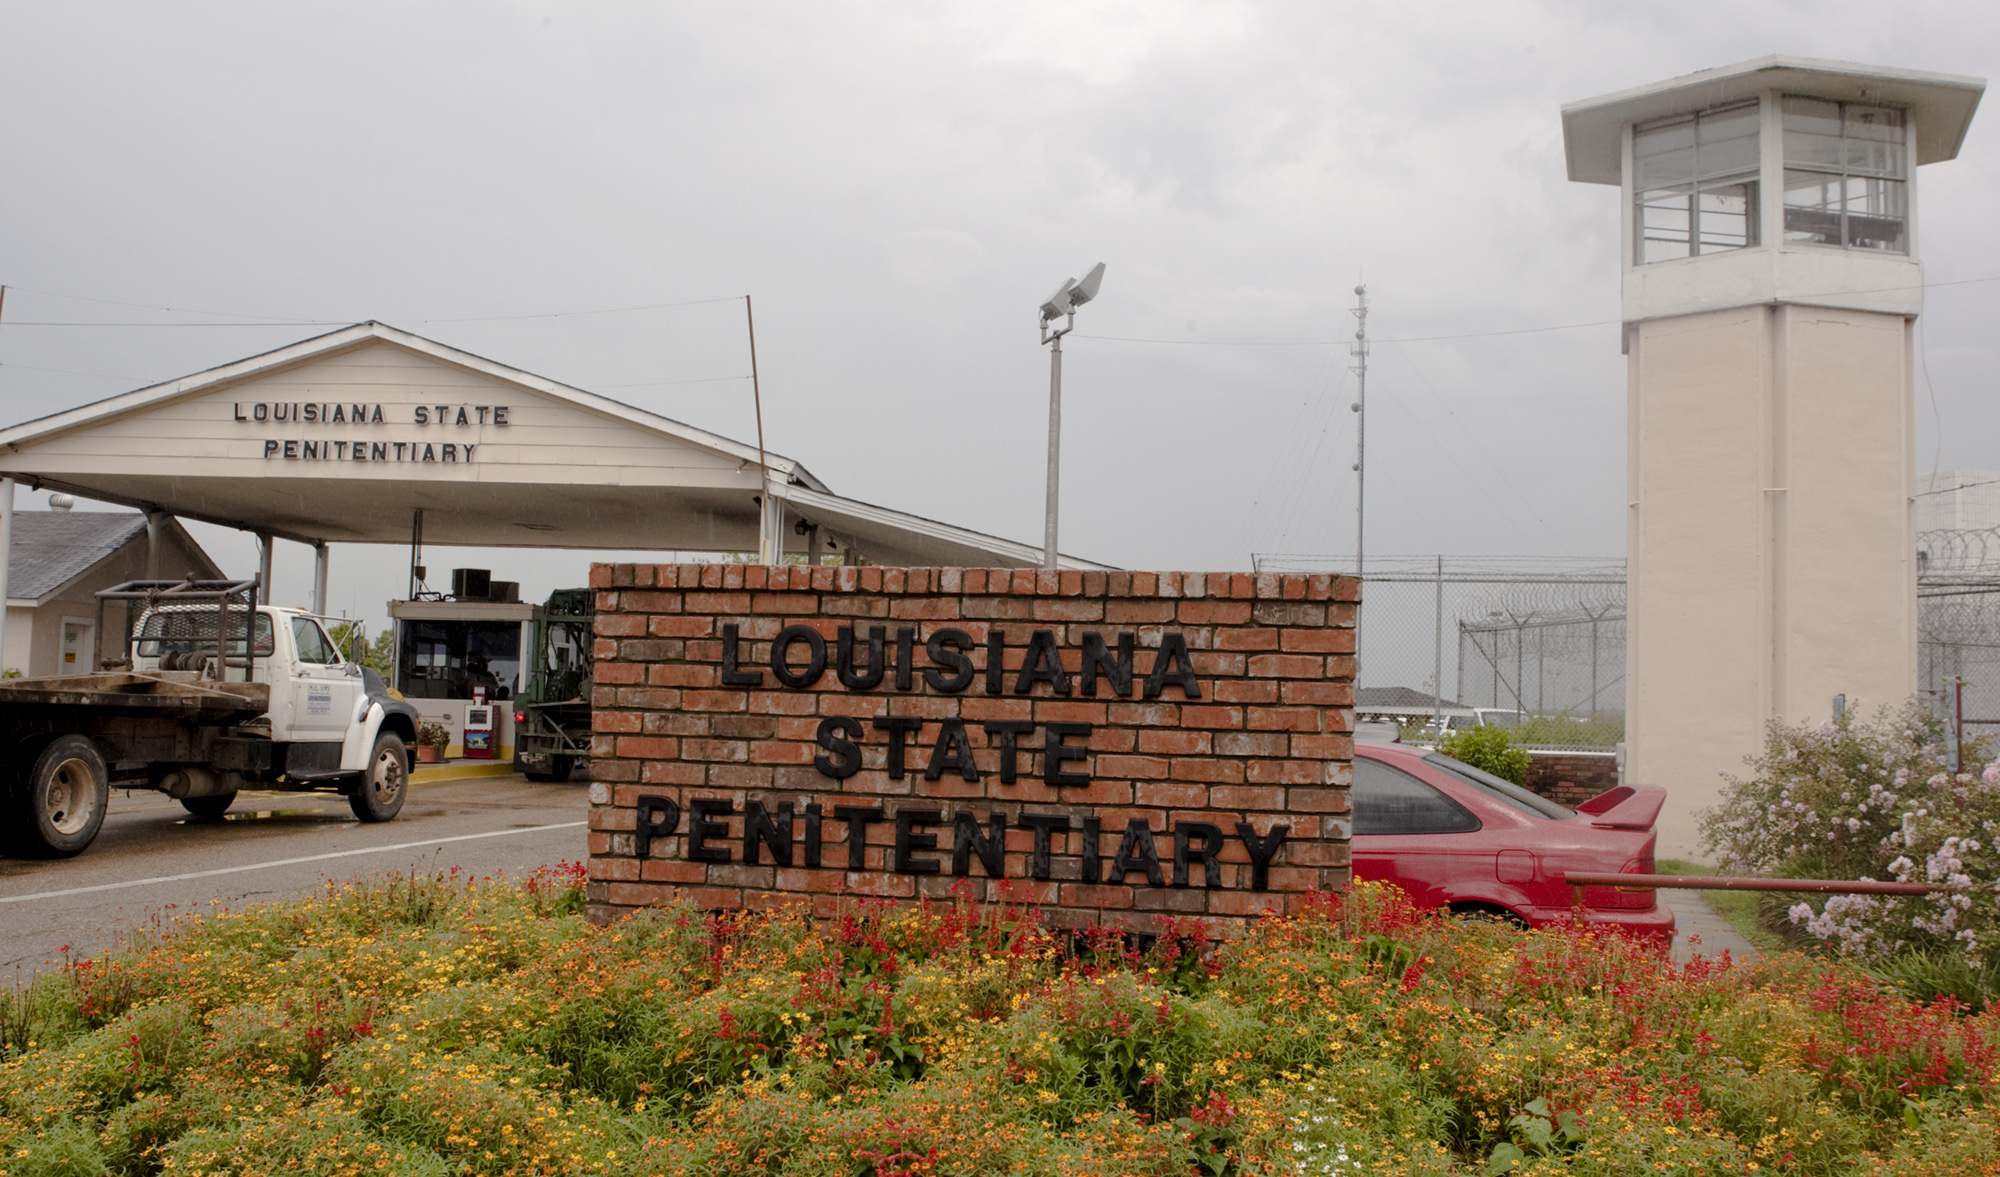 A view of the front entrance of the Louisiana State Penitentiary in Angola, La. Albert Woodfox, the last of three high-profile Louisiana prisoners known as the  Angola Three,  could walk free within days after a federal judge ordered state officials to release him immediately.